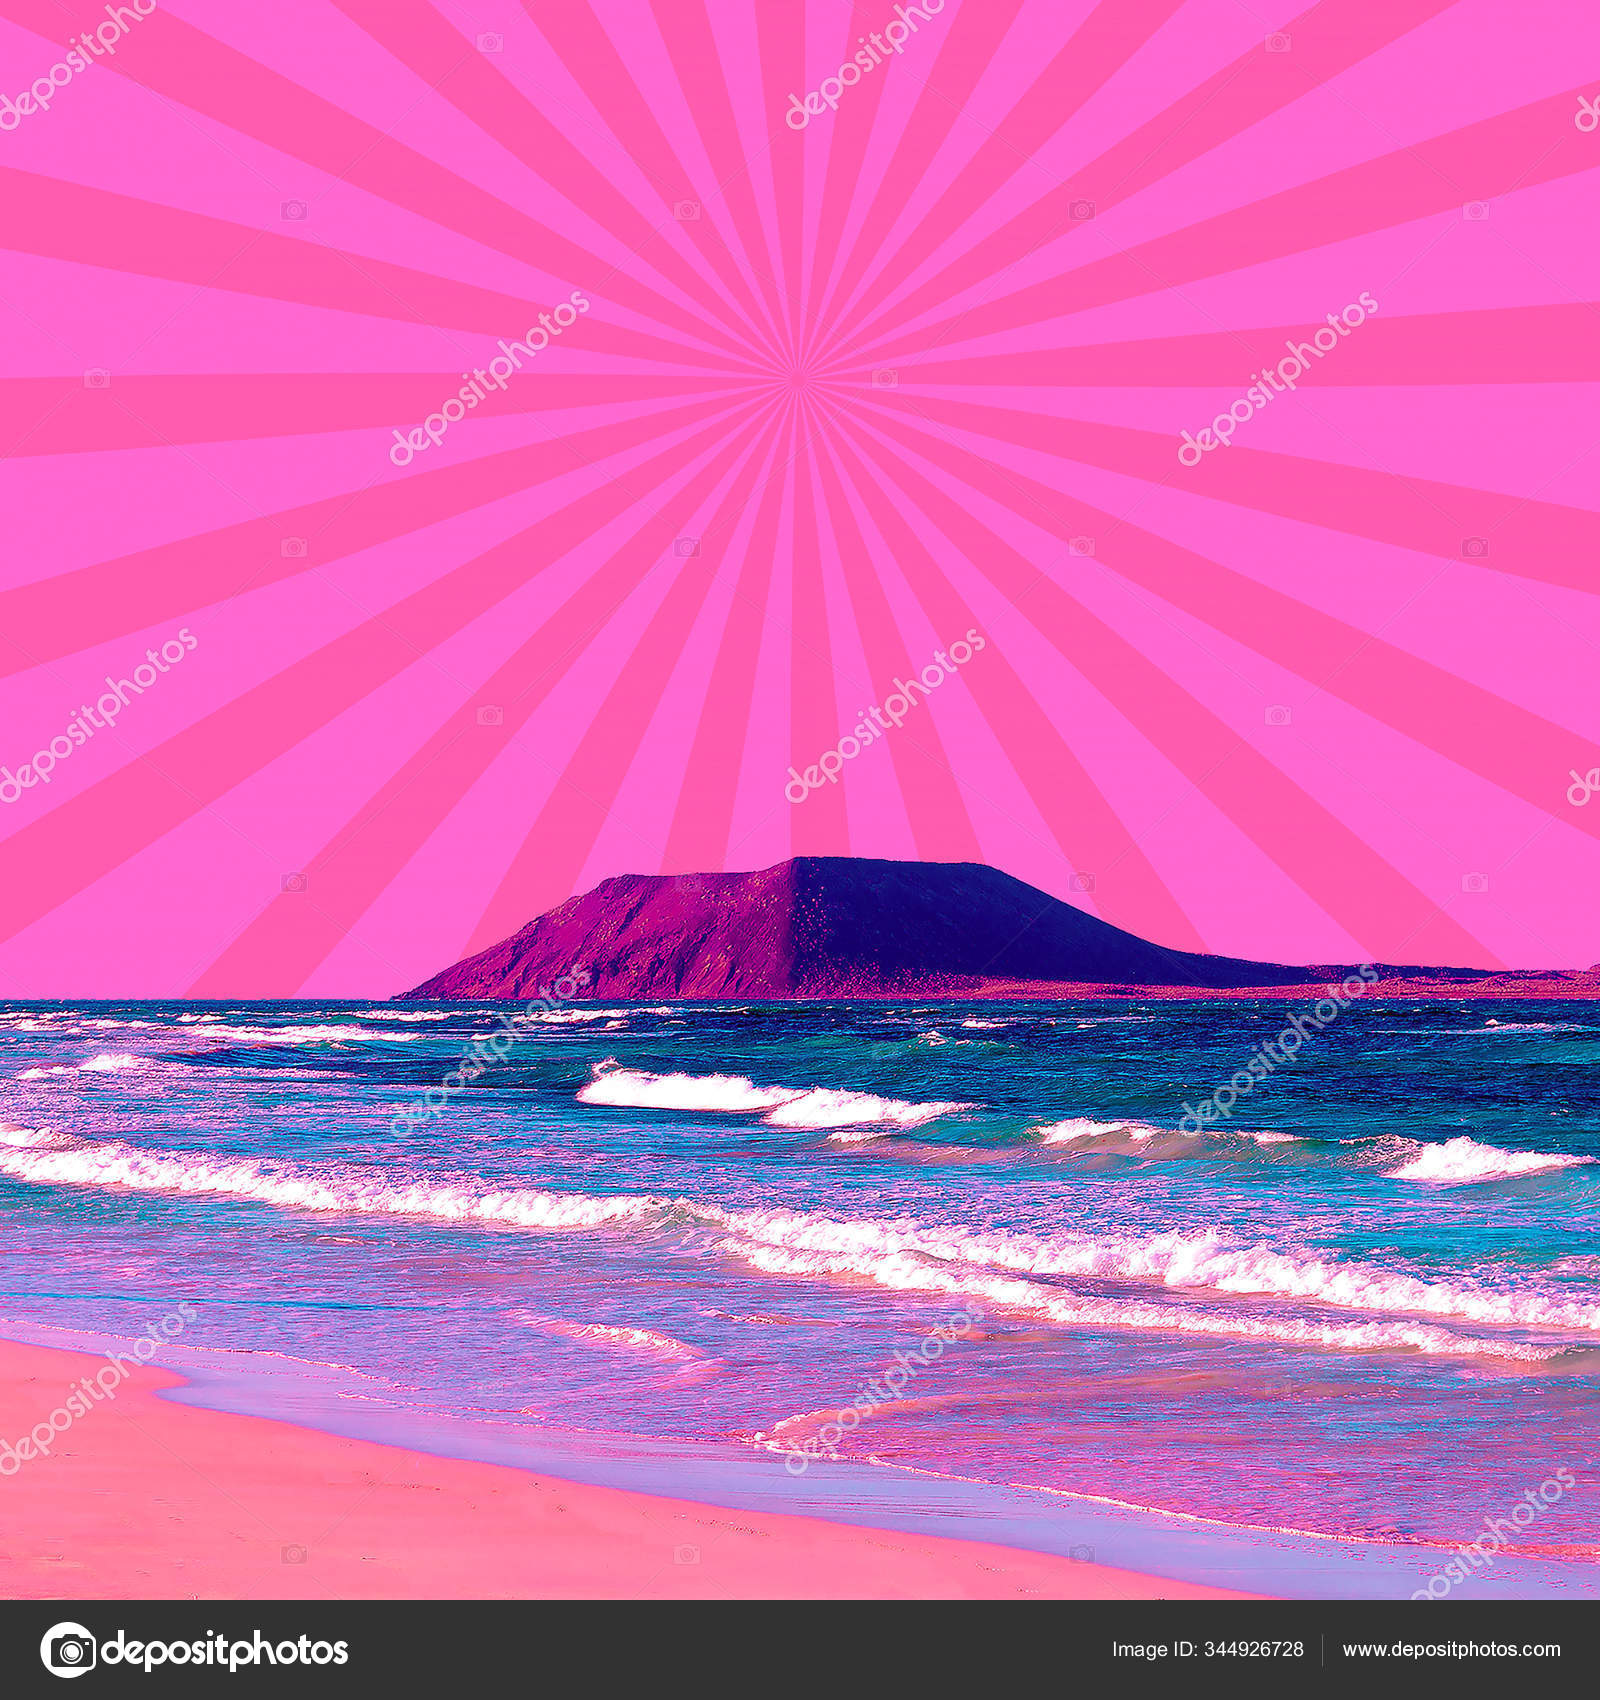 Aesthetic Collage Wallpaper Beach Ocean View And Geometry Mix Stock Photo Image By C Porechenskaya 344926728